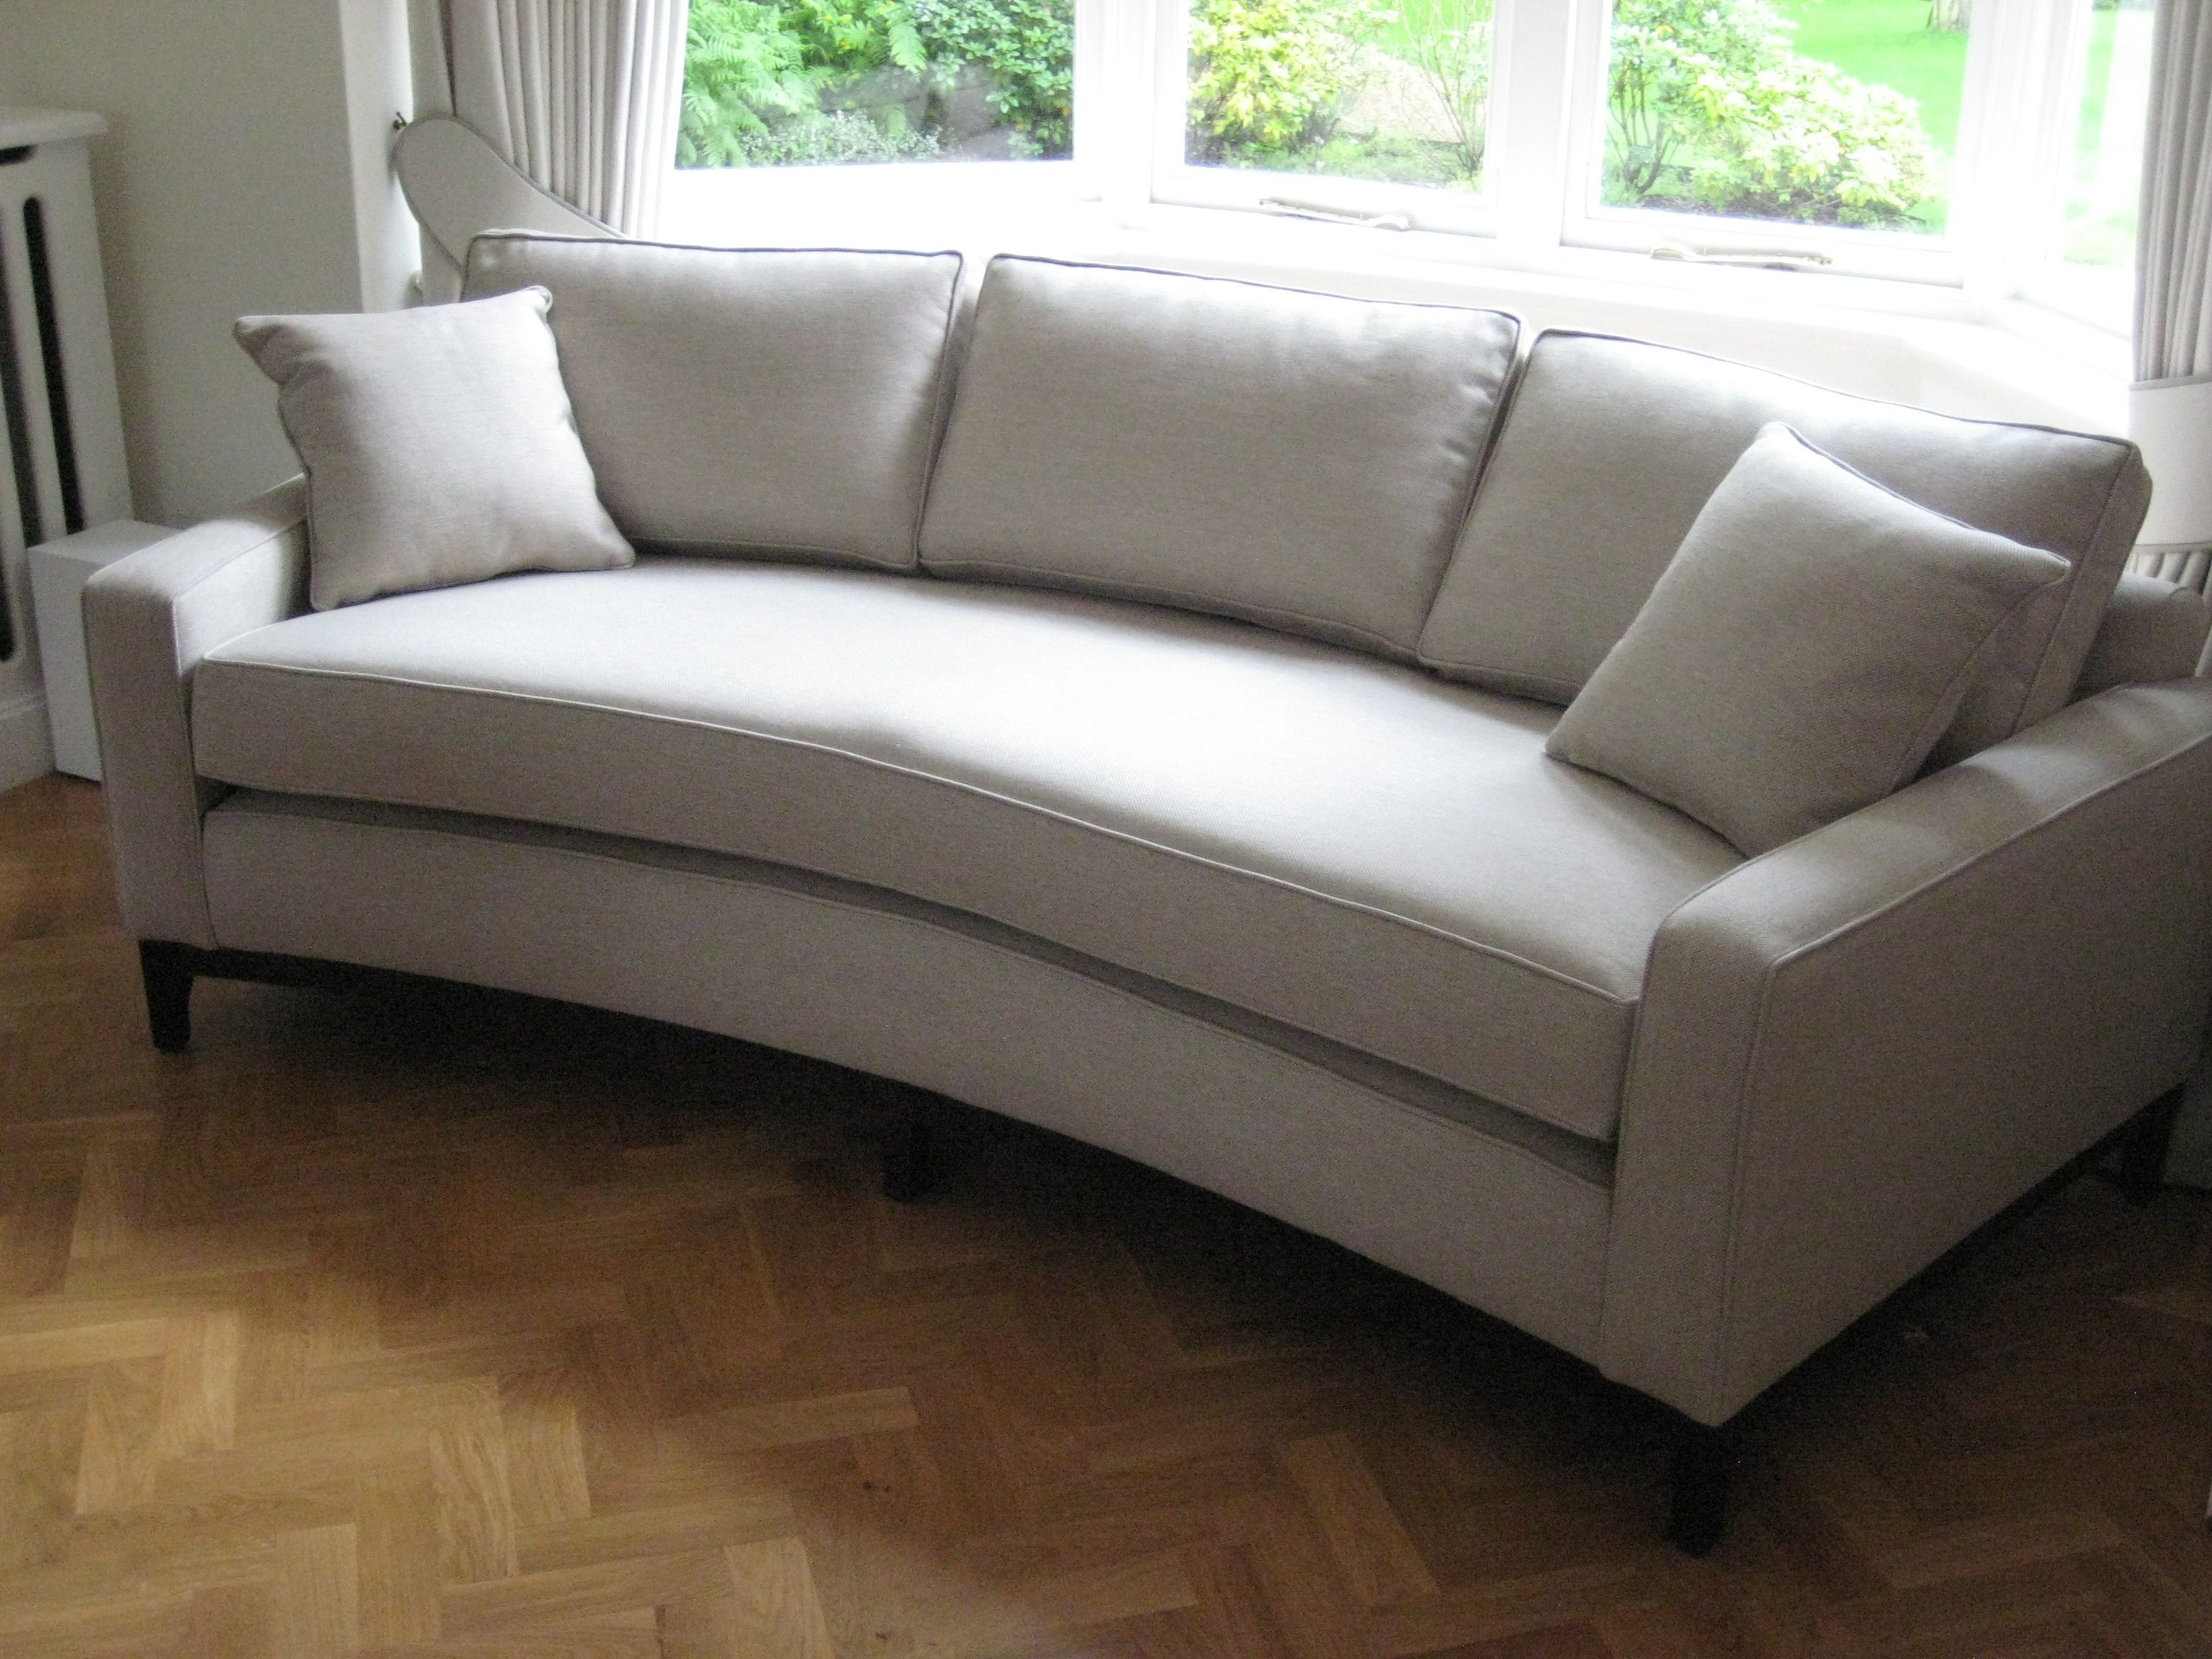 Bespoke curved sofa perfect for a bay window this has one base bespoke curved sofa perfect for a bay window this has one base seat cushion parisarafo Gallery